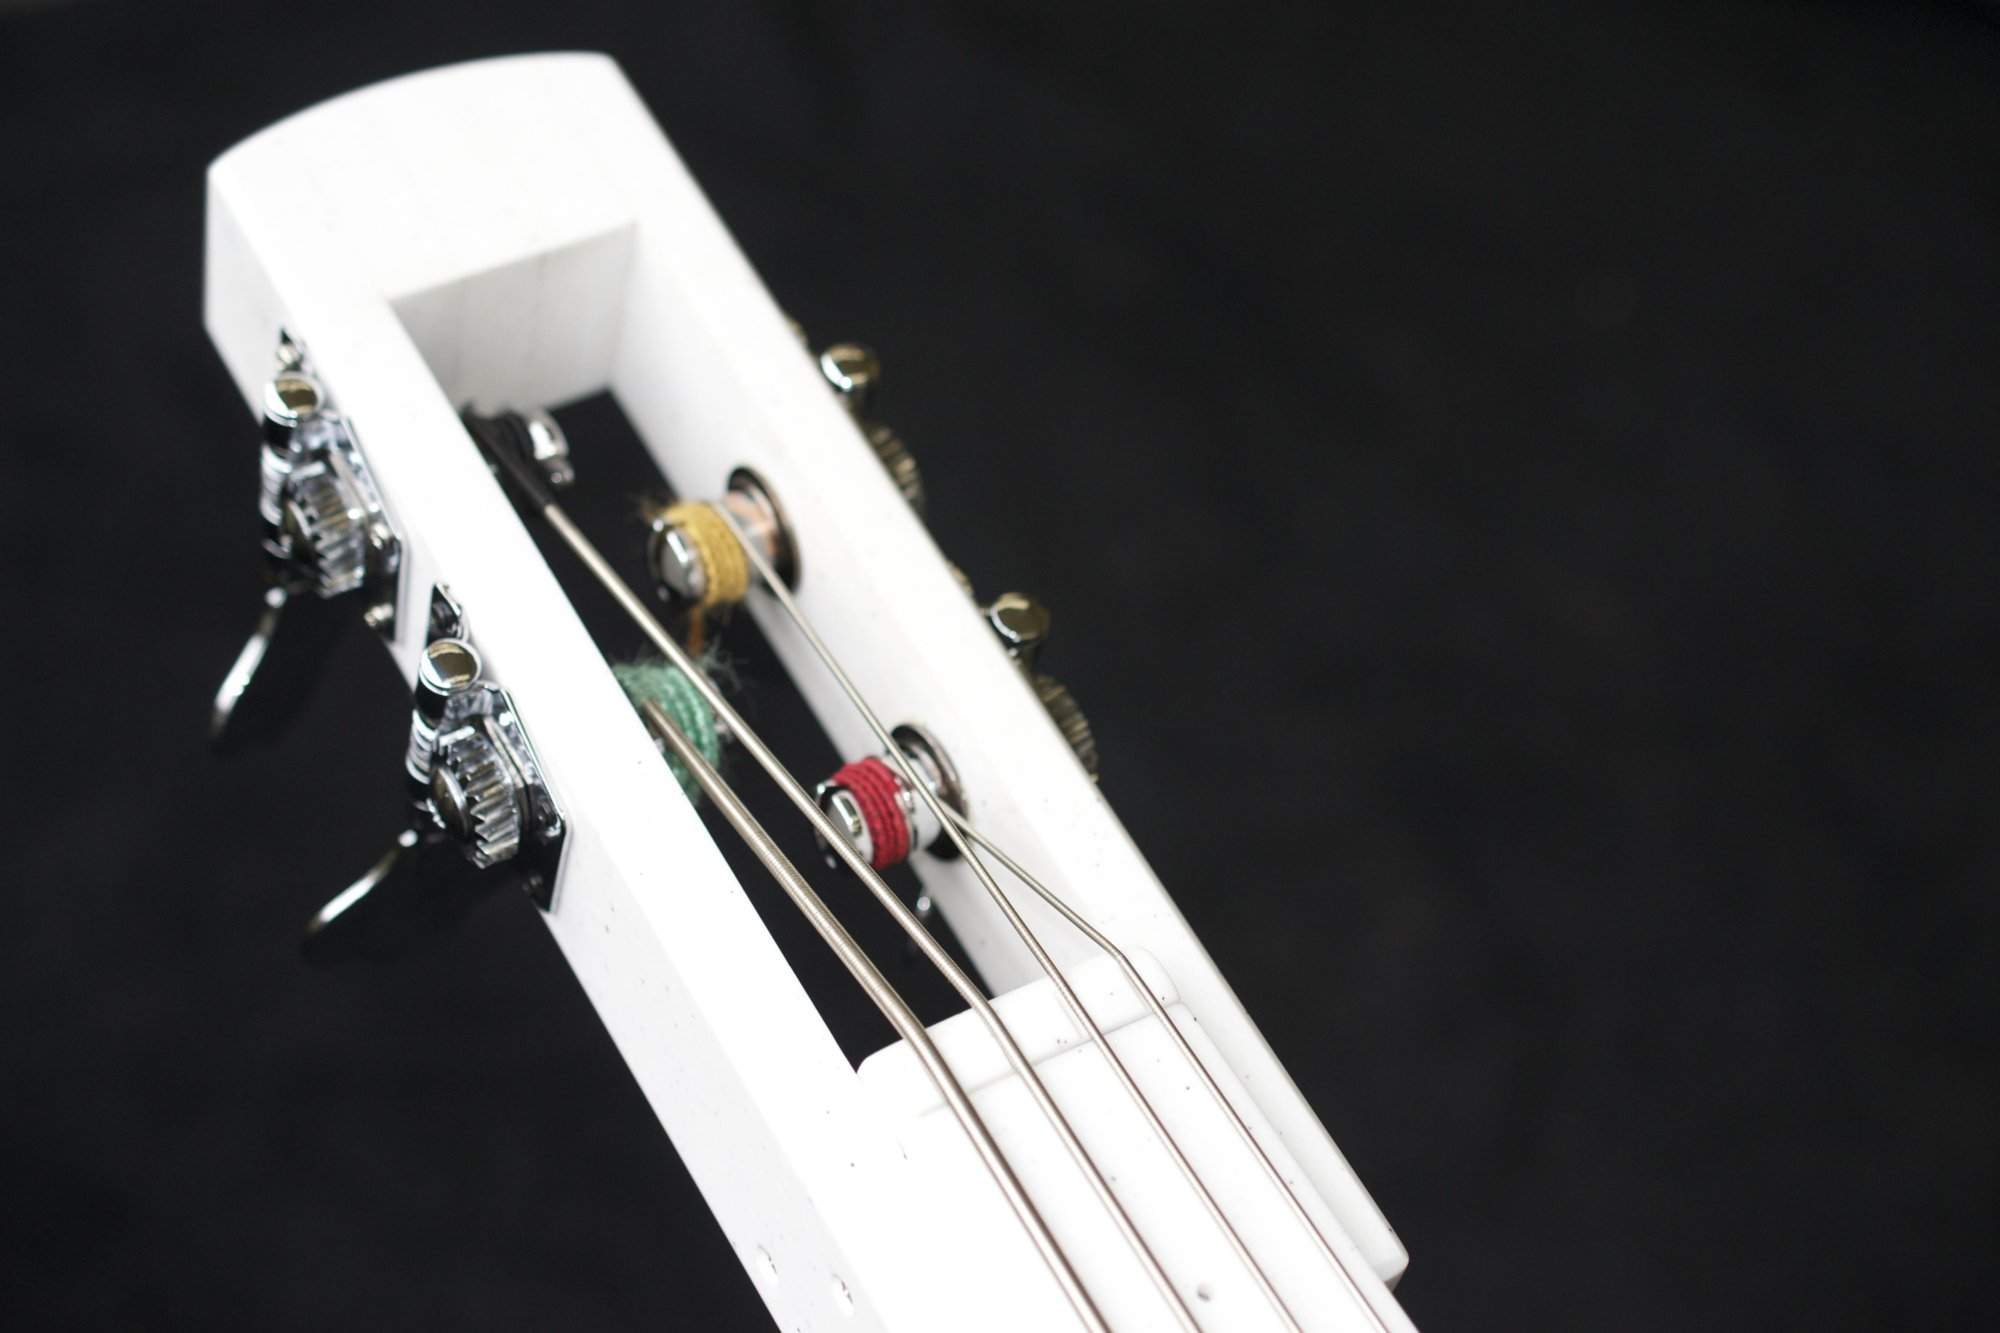 4 Headstock and nut with new strings.